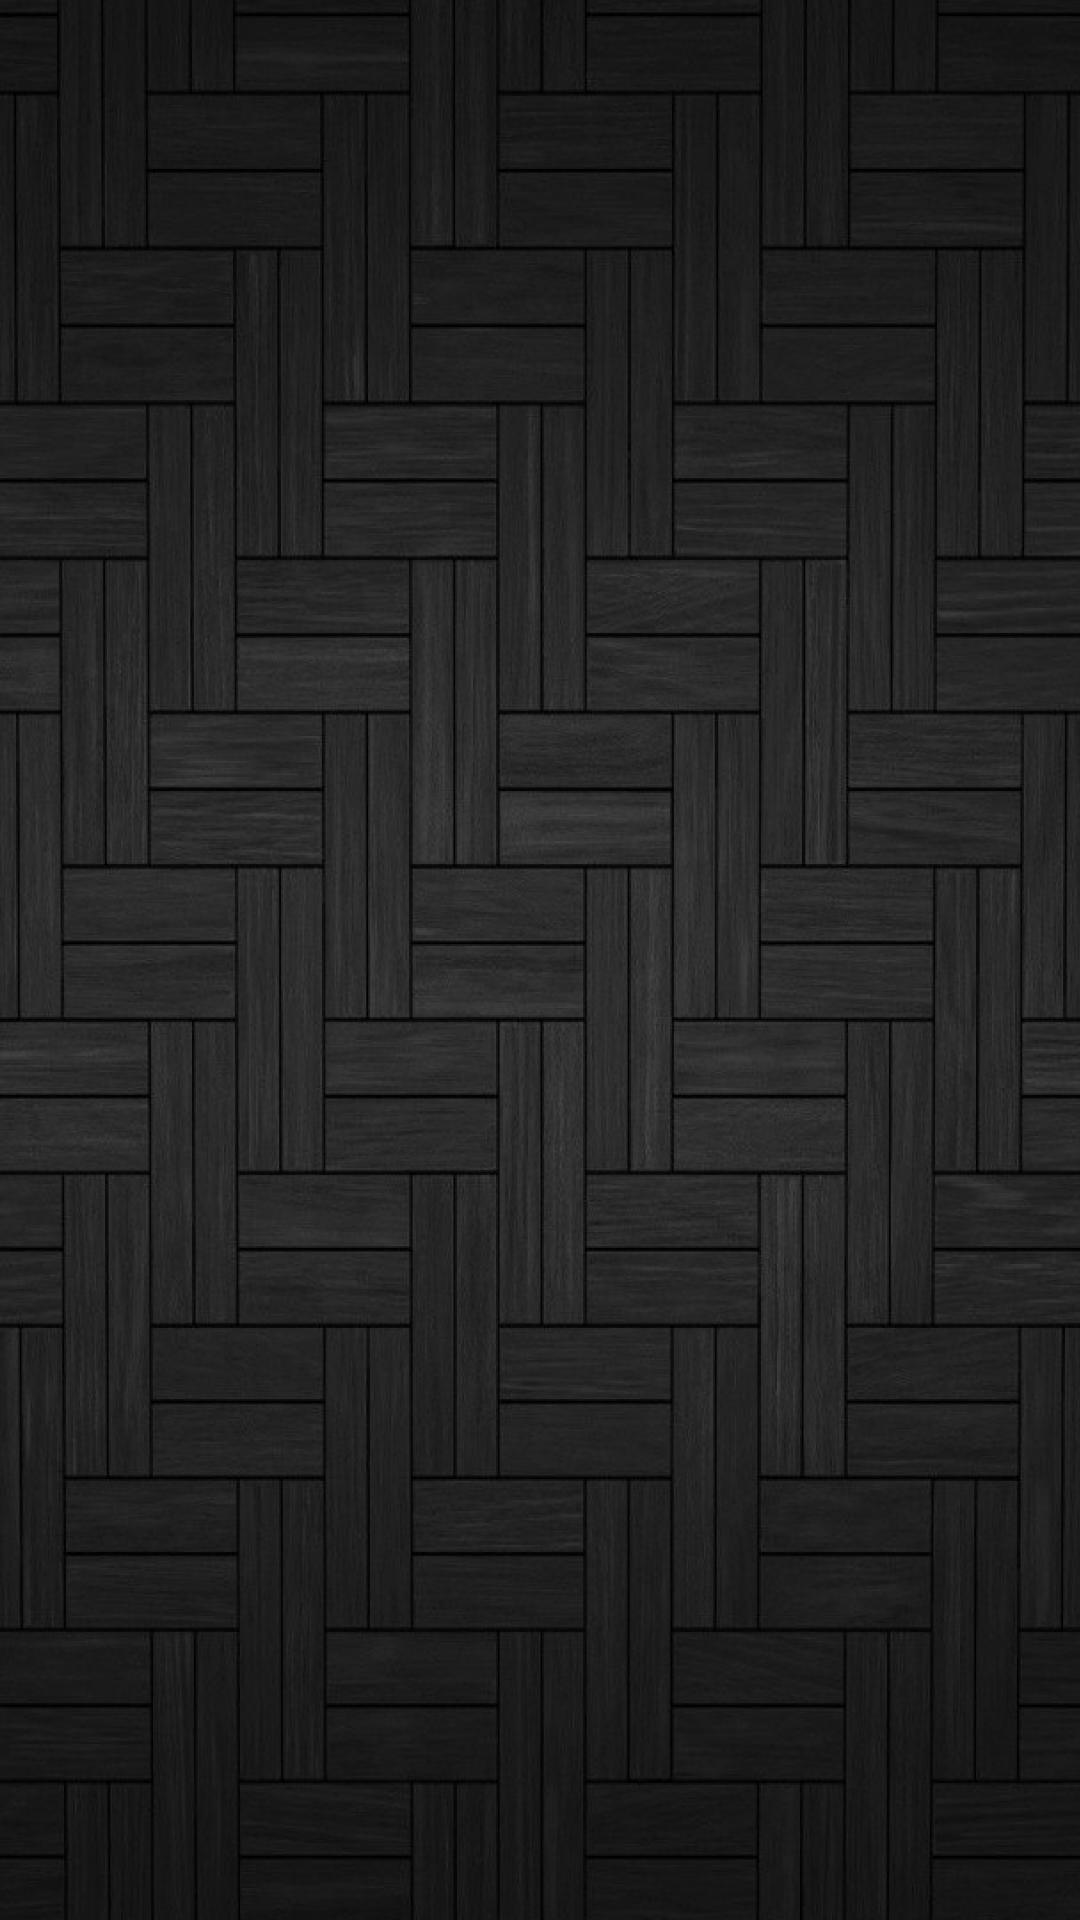 Wallpaper Iphone X Full Hd Iphone Wallpaper Dark Tiles Wood Iphone Wallpaper